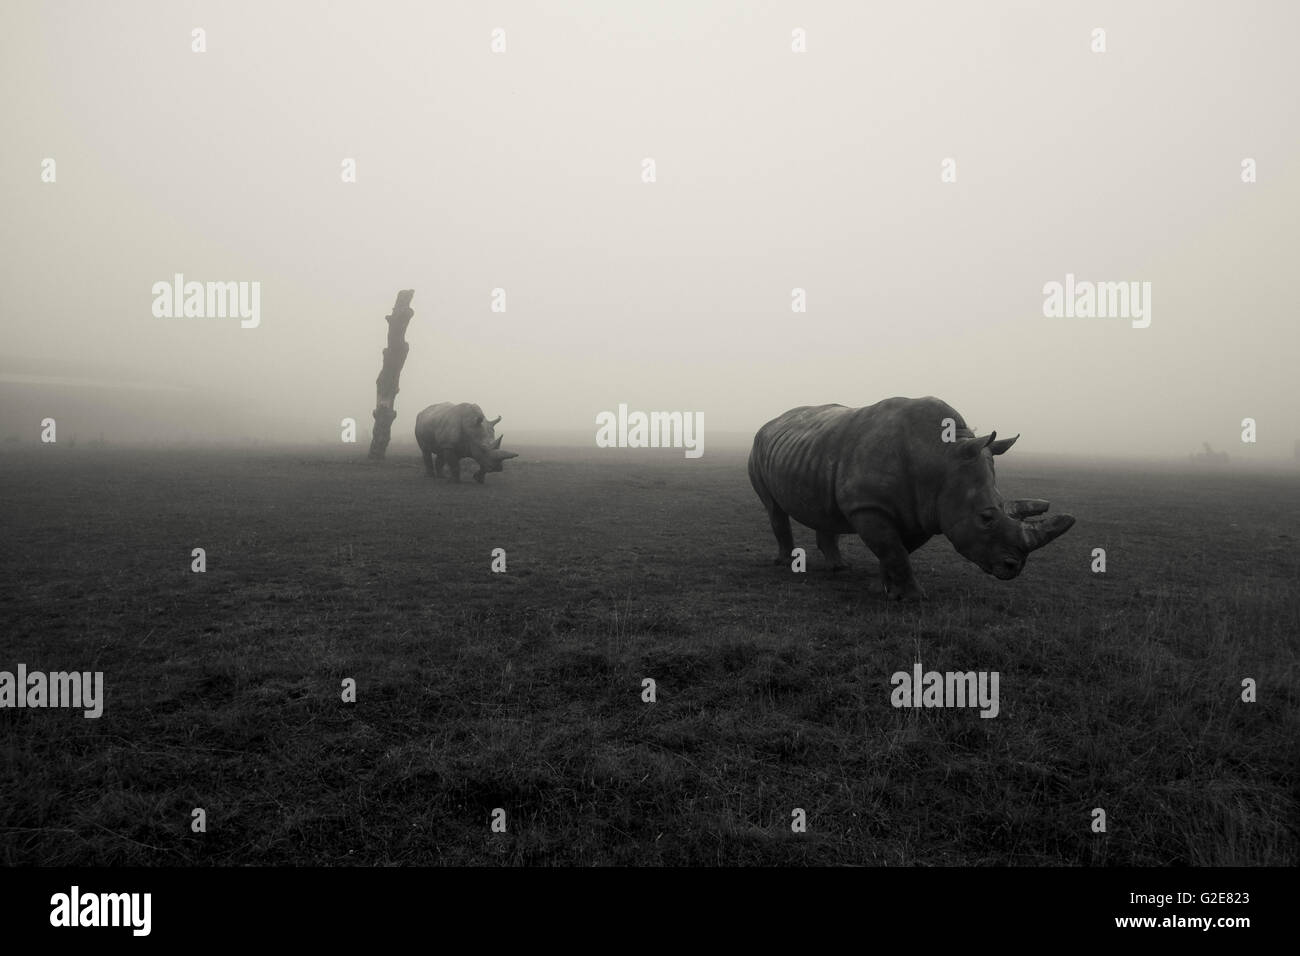 Two Rhinos in Field on Foggy Day - Stock Image